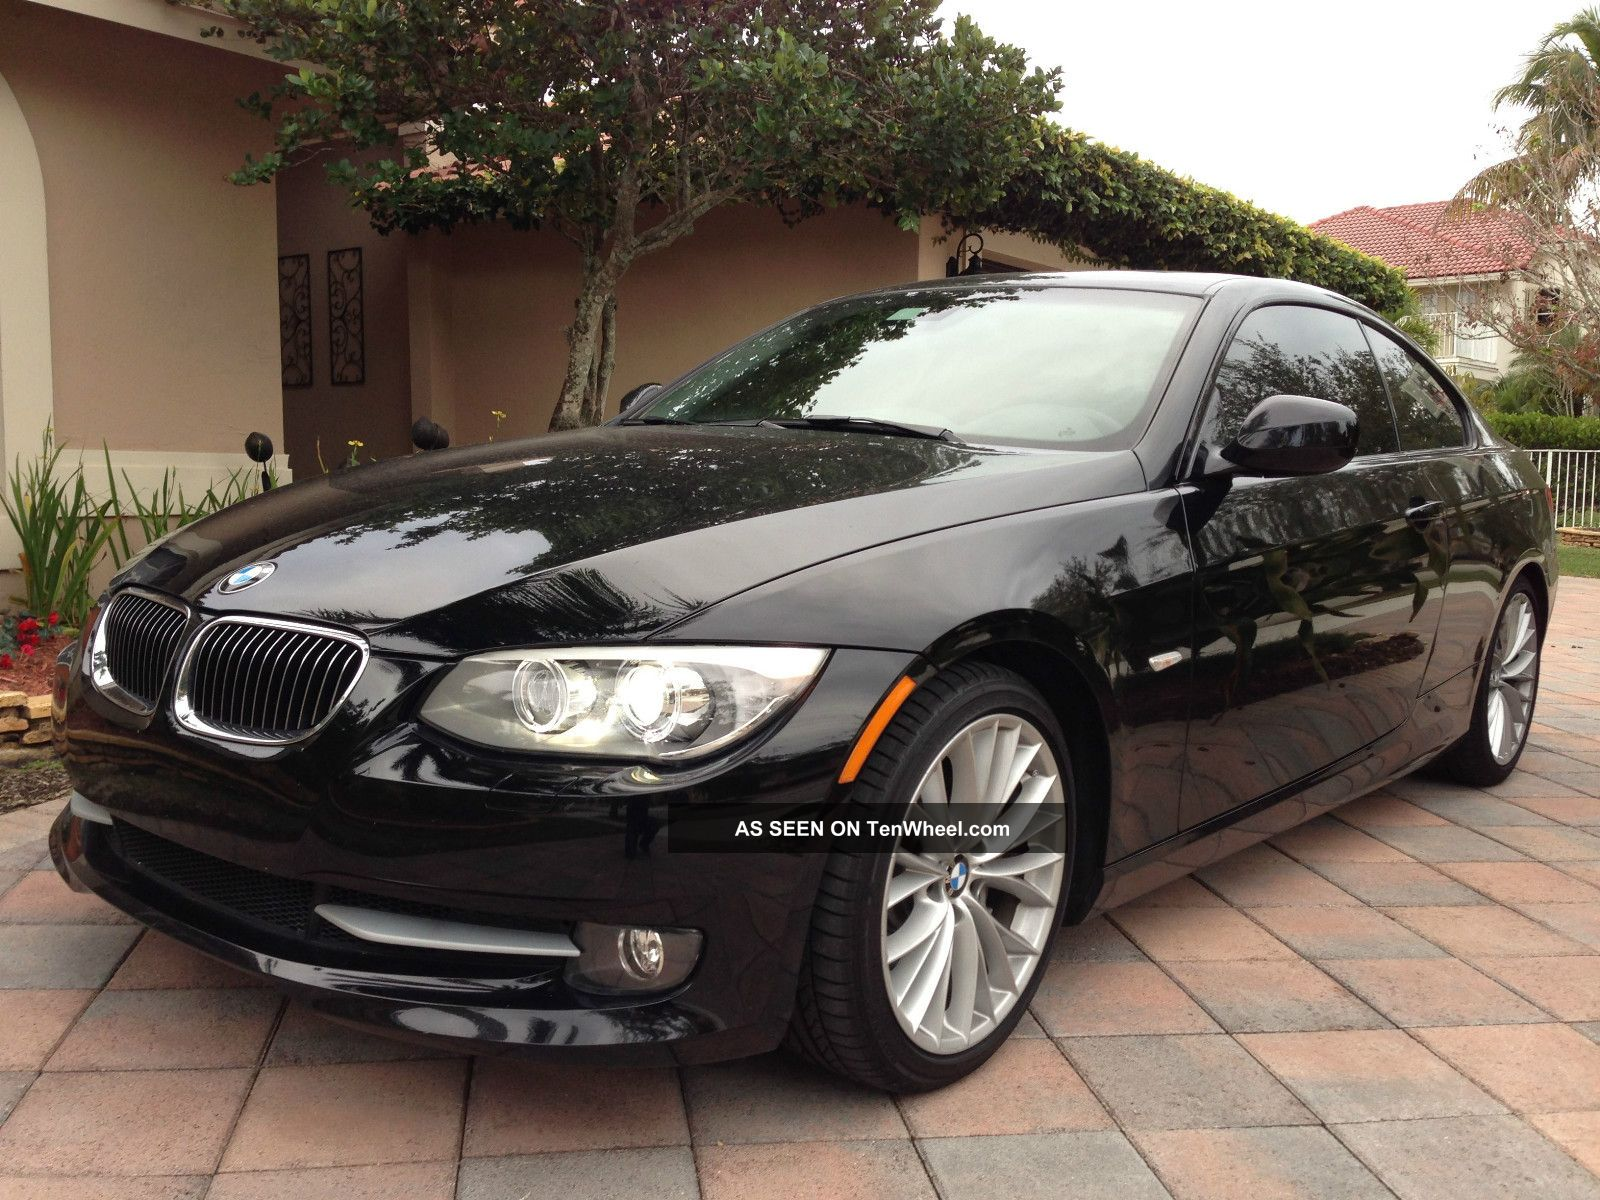 2011 Bmw 335i Coupe 2 - Door 3.  0l Turbo With Premium Package 3-Series photo